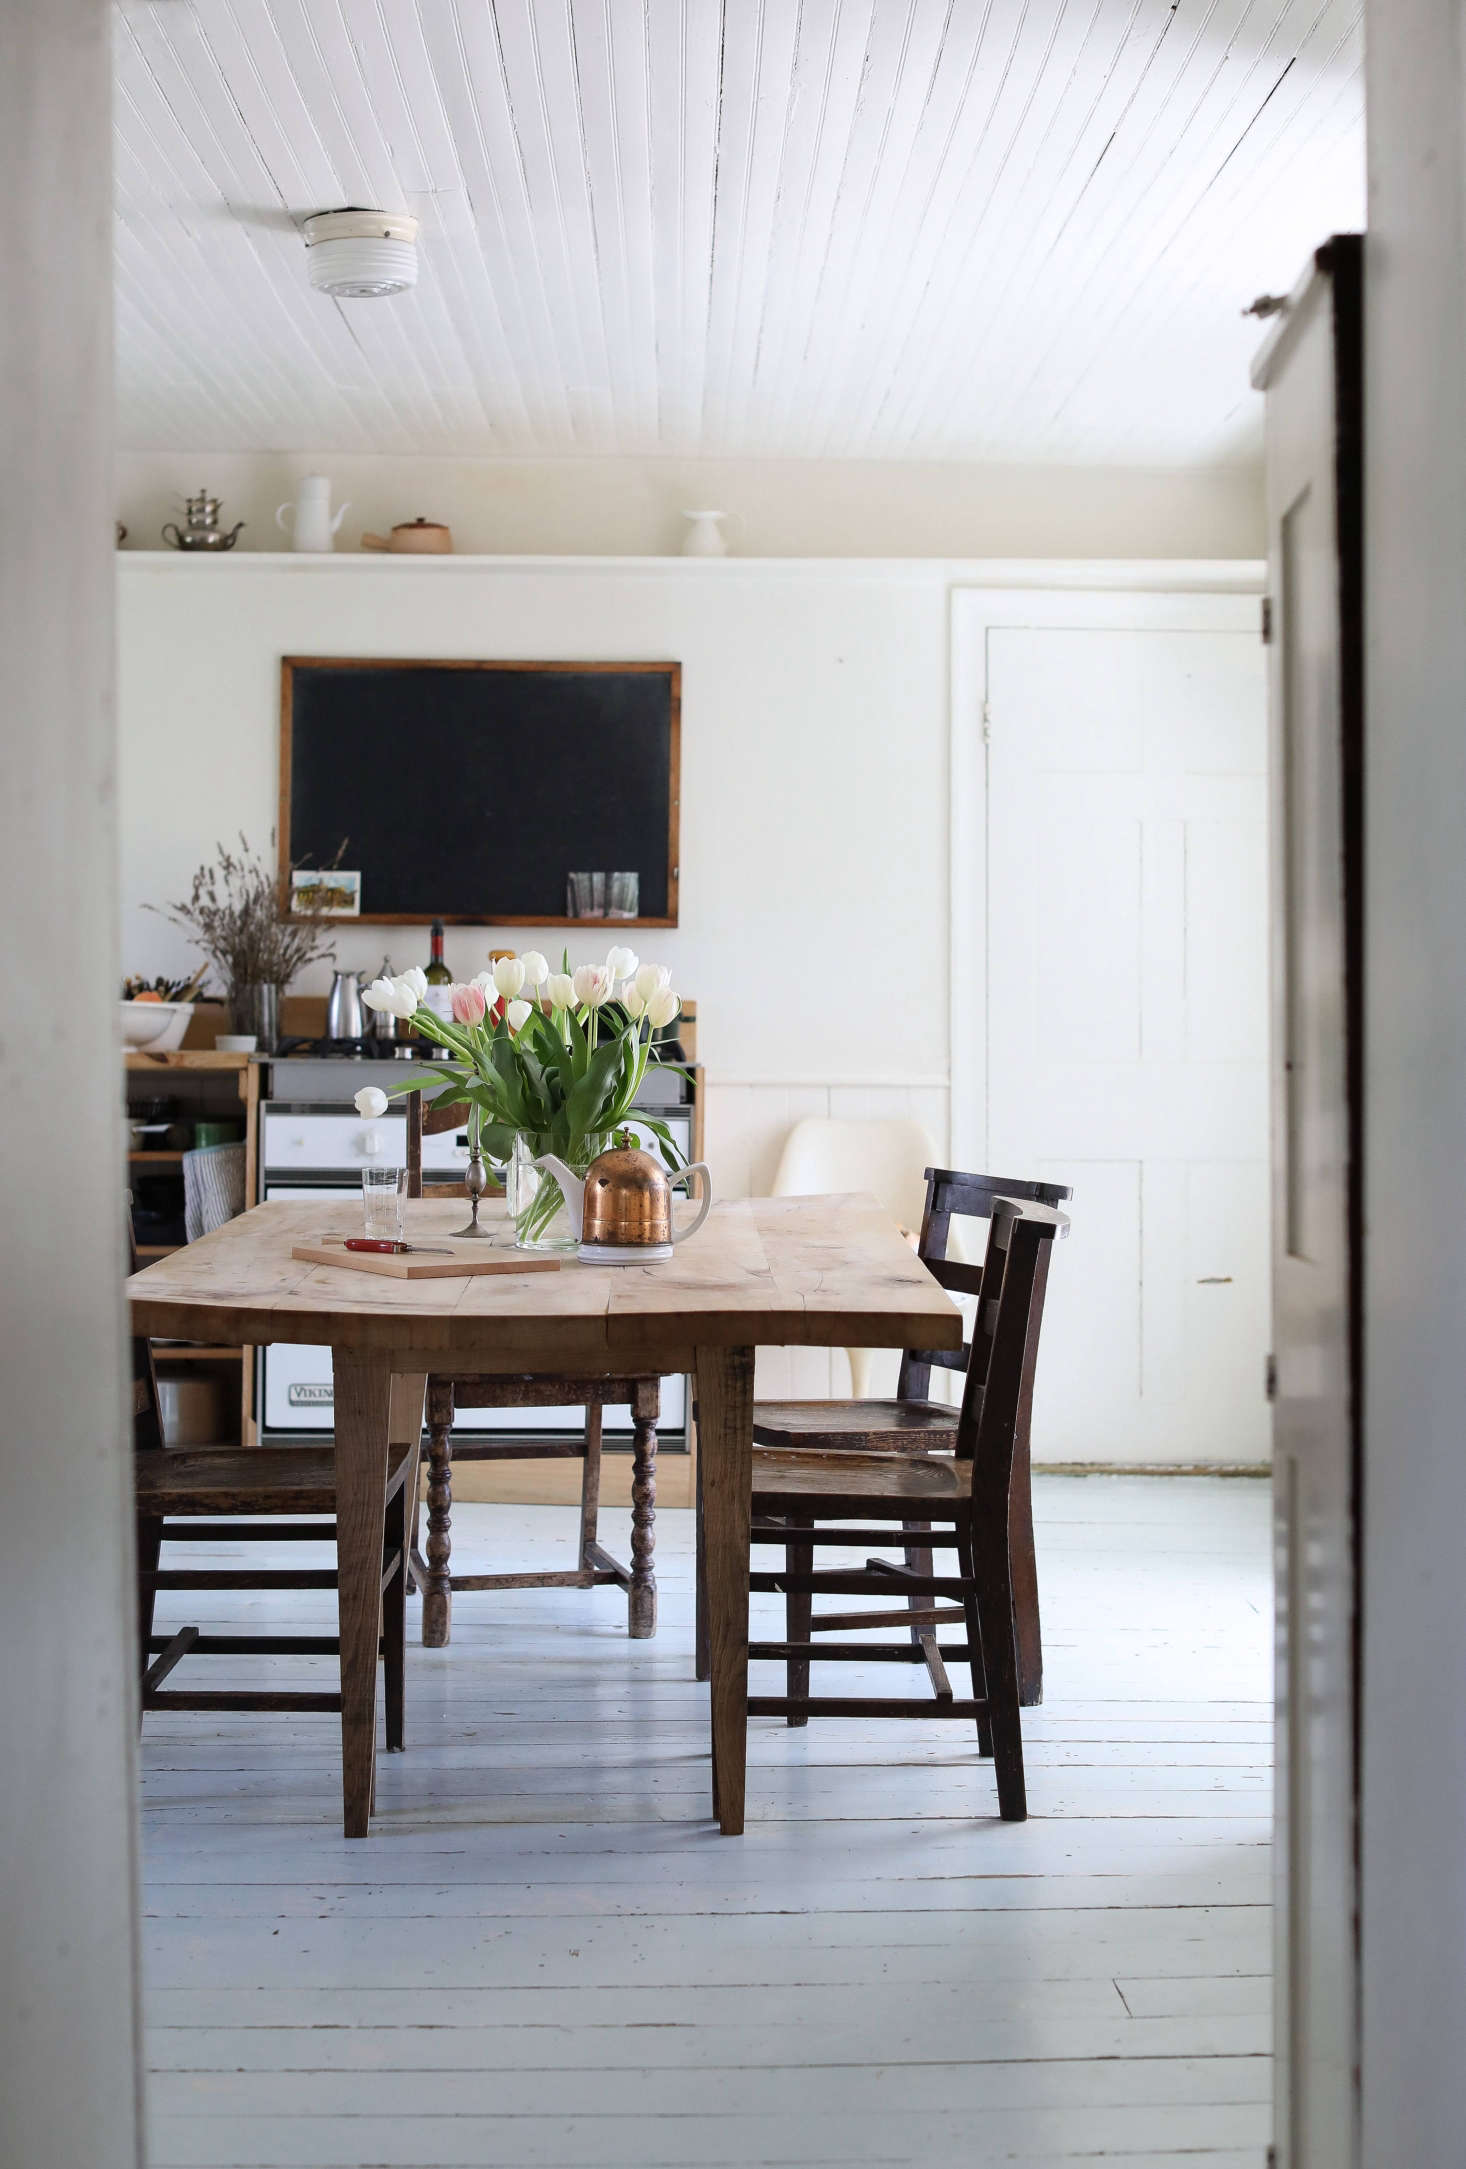 Ehrlichu0027s Commissioned Utilitarian Table In The Kitchen. Photograph By  Justine Hand From House Call: